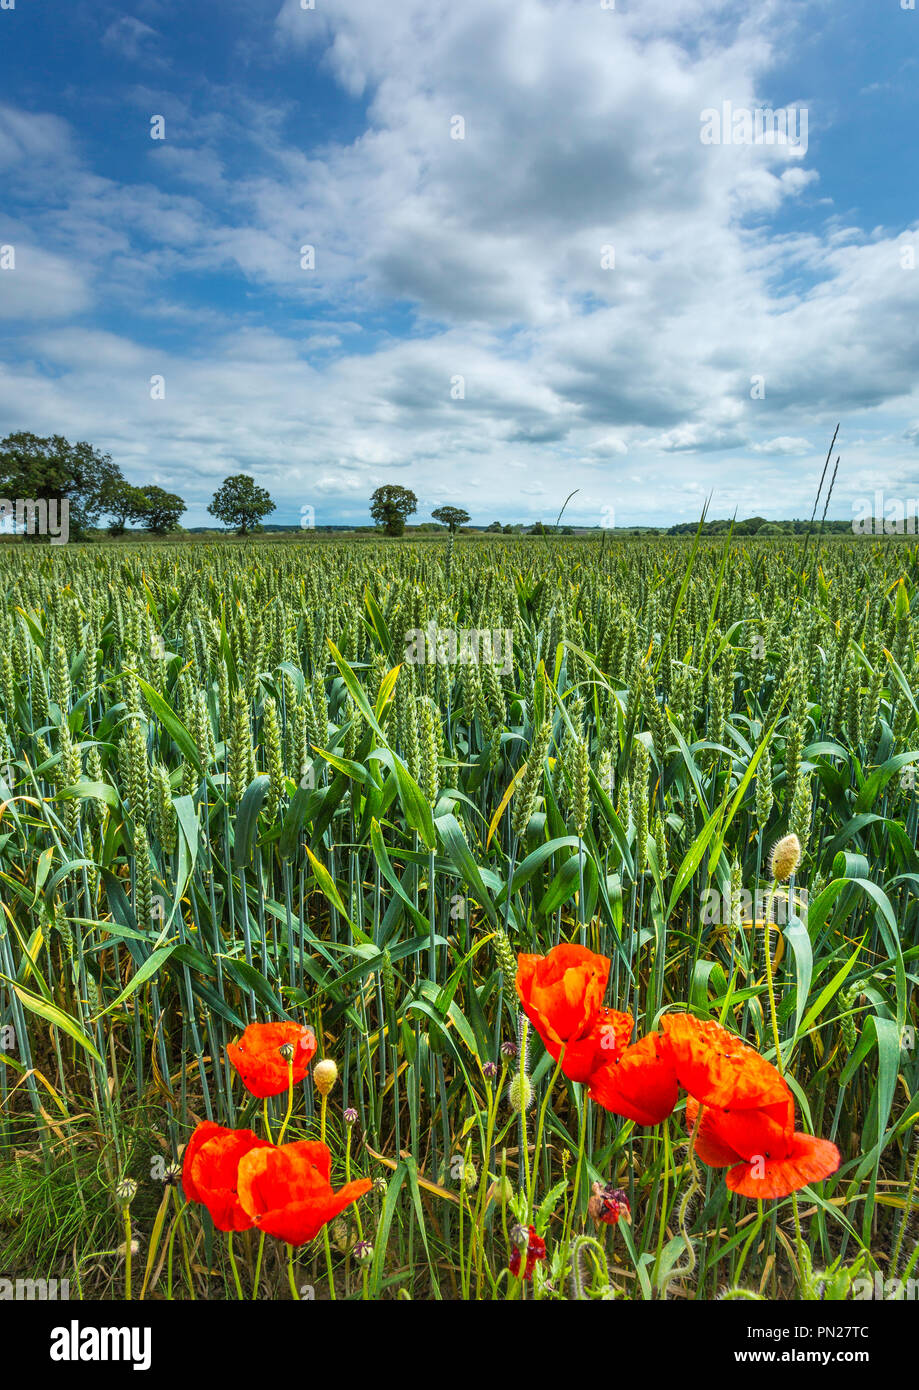 Poppies growing on a field margin. - Stock Image